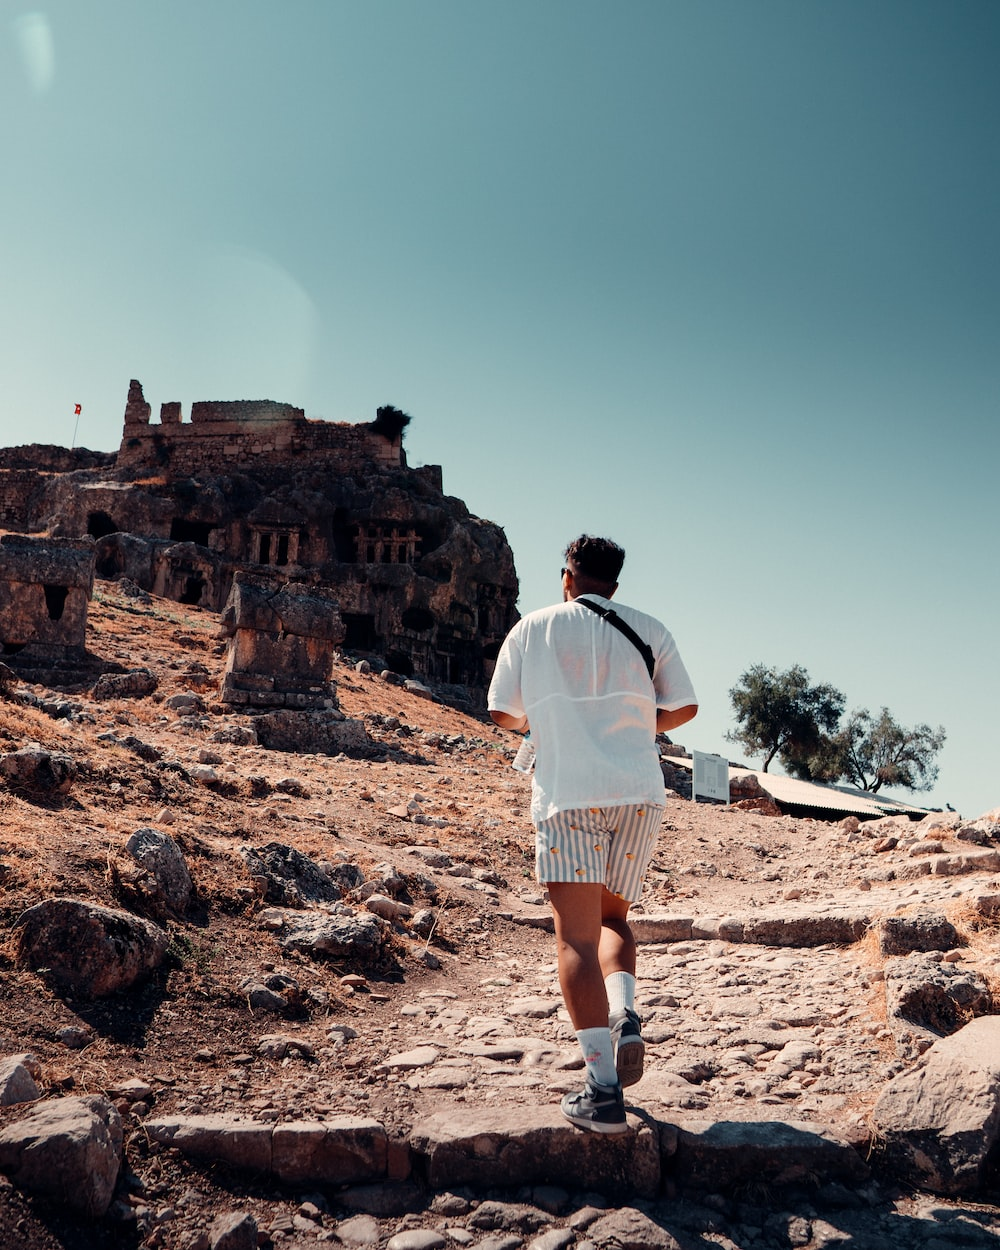 man in white shirt and white shorts standing on brown rock formation during daytime